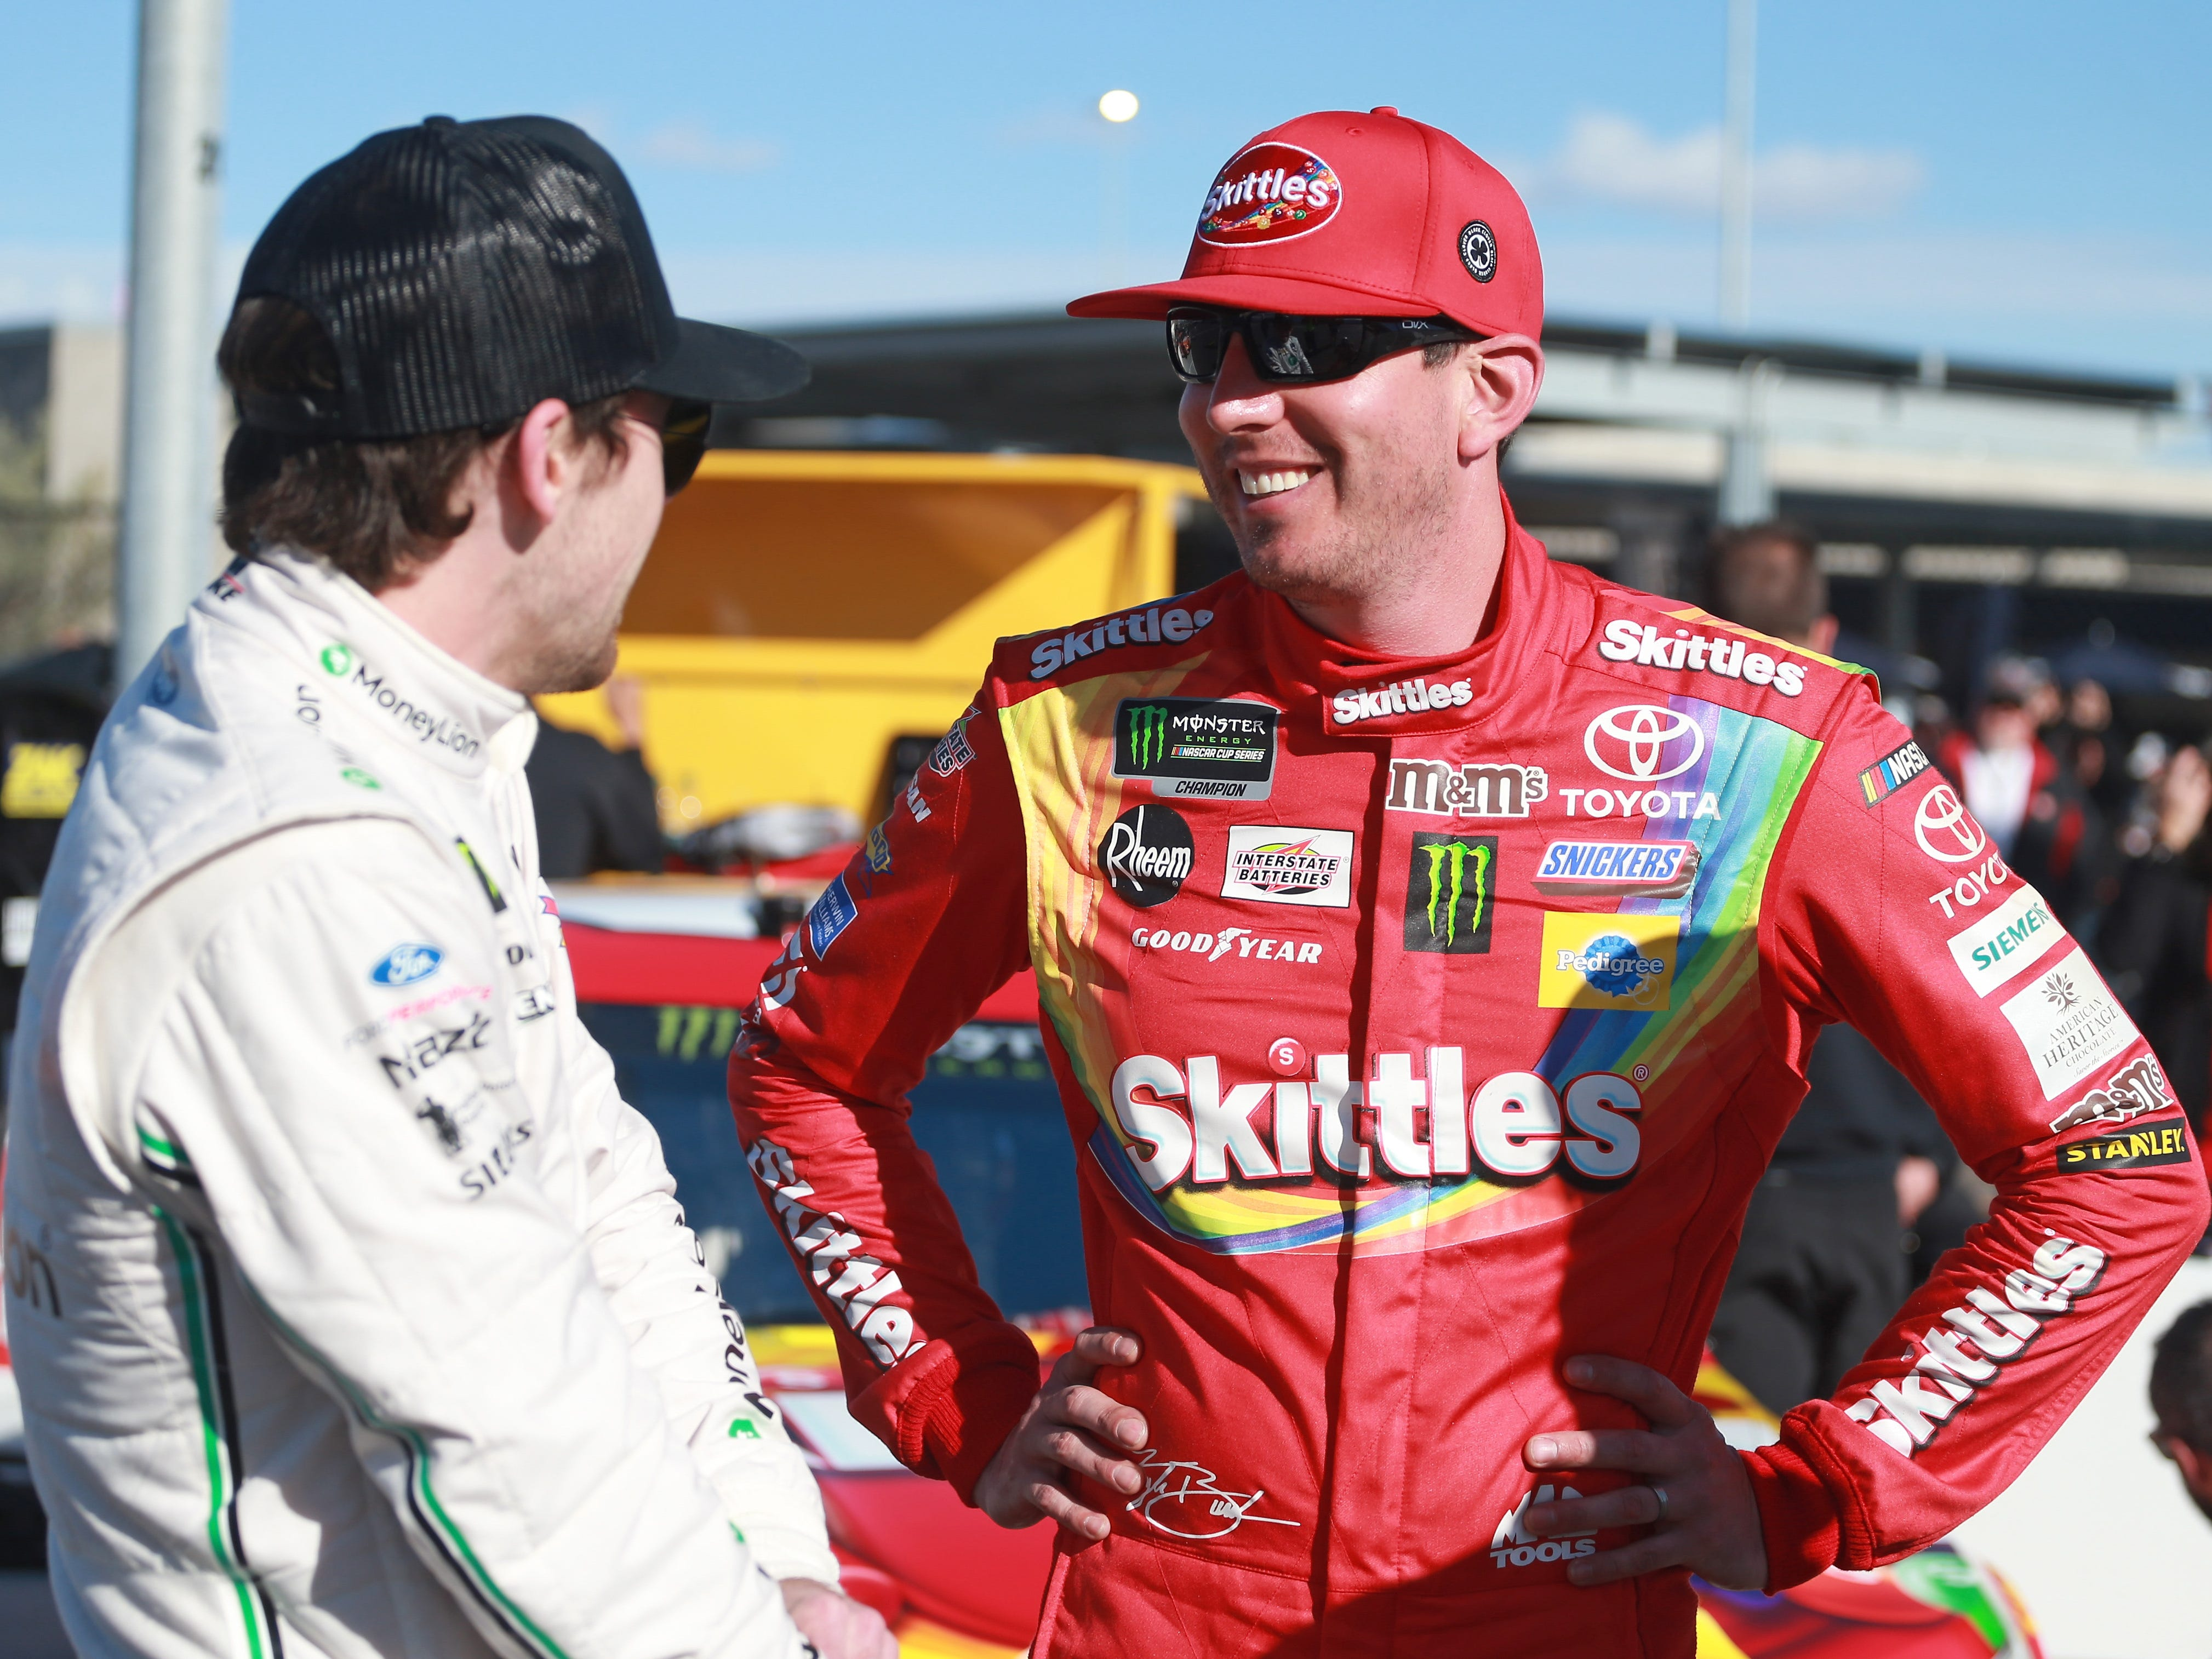 AVONDALE, AZ - MARCH 08:  Kyle Busch, driver of the #18 Skittles Toyota, talks with Ryan Blaney, driver of the #12 MoneyLion Ford, during qualifying for the Monster Energy NASCAR Cup Series TicketGuardian 500 at ISM Raceway on March 8, 2019 in Avondale, Arizona.